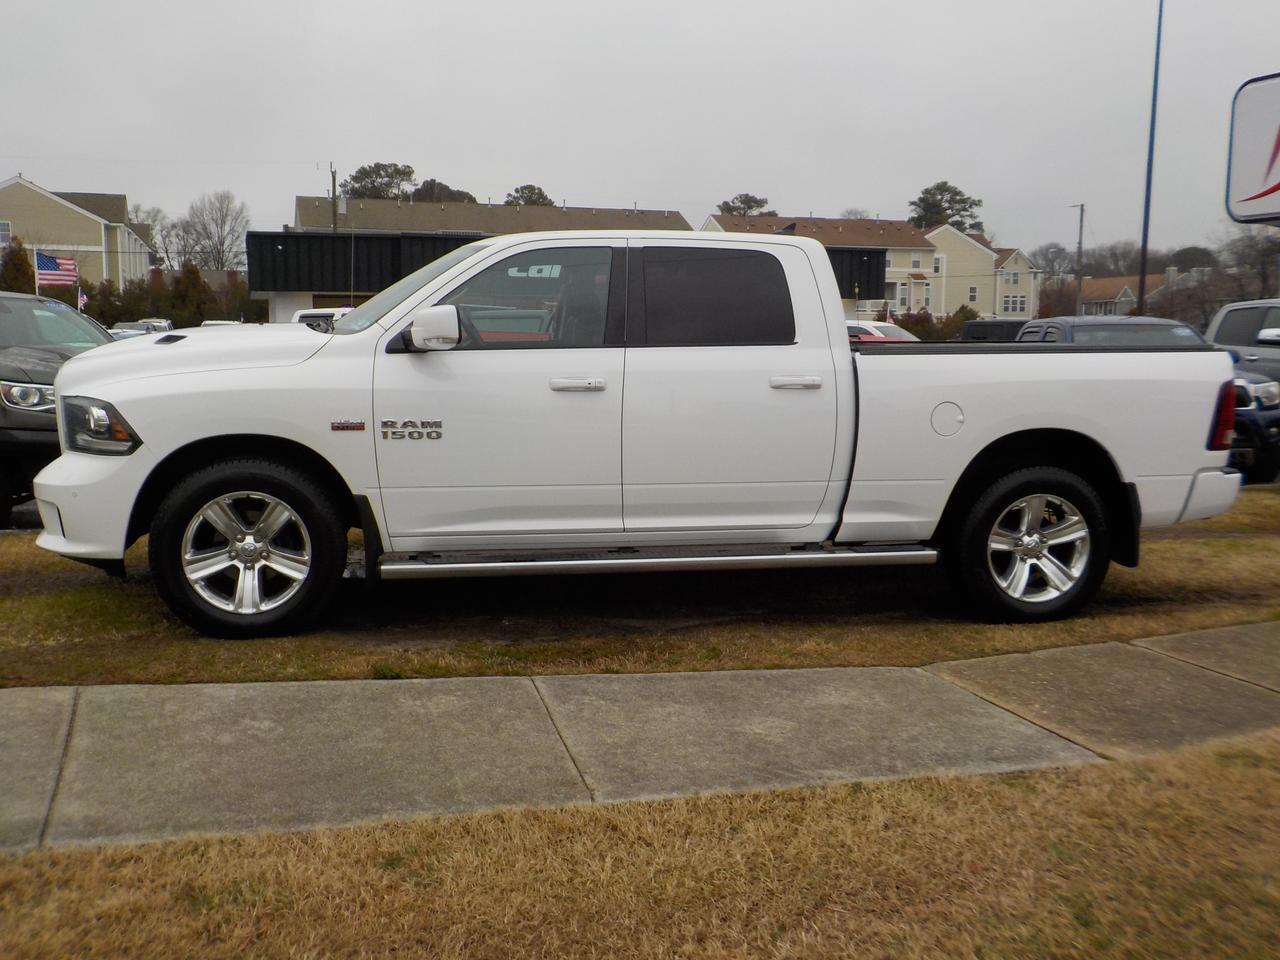 2014 RAM 1500 CREW CAB SPORT LONGBED HEMI 4X4, ONE OWNER, HEATED SEATS, NAVIGATION, HARD TONNEAU COVER, TOW PKG! Virginia Beach VA